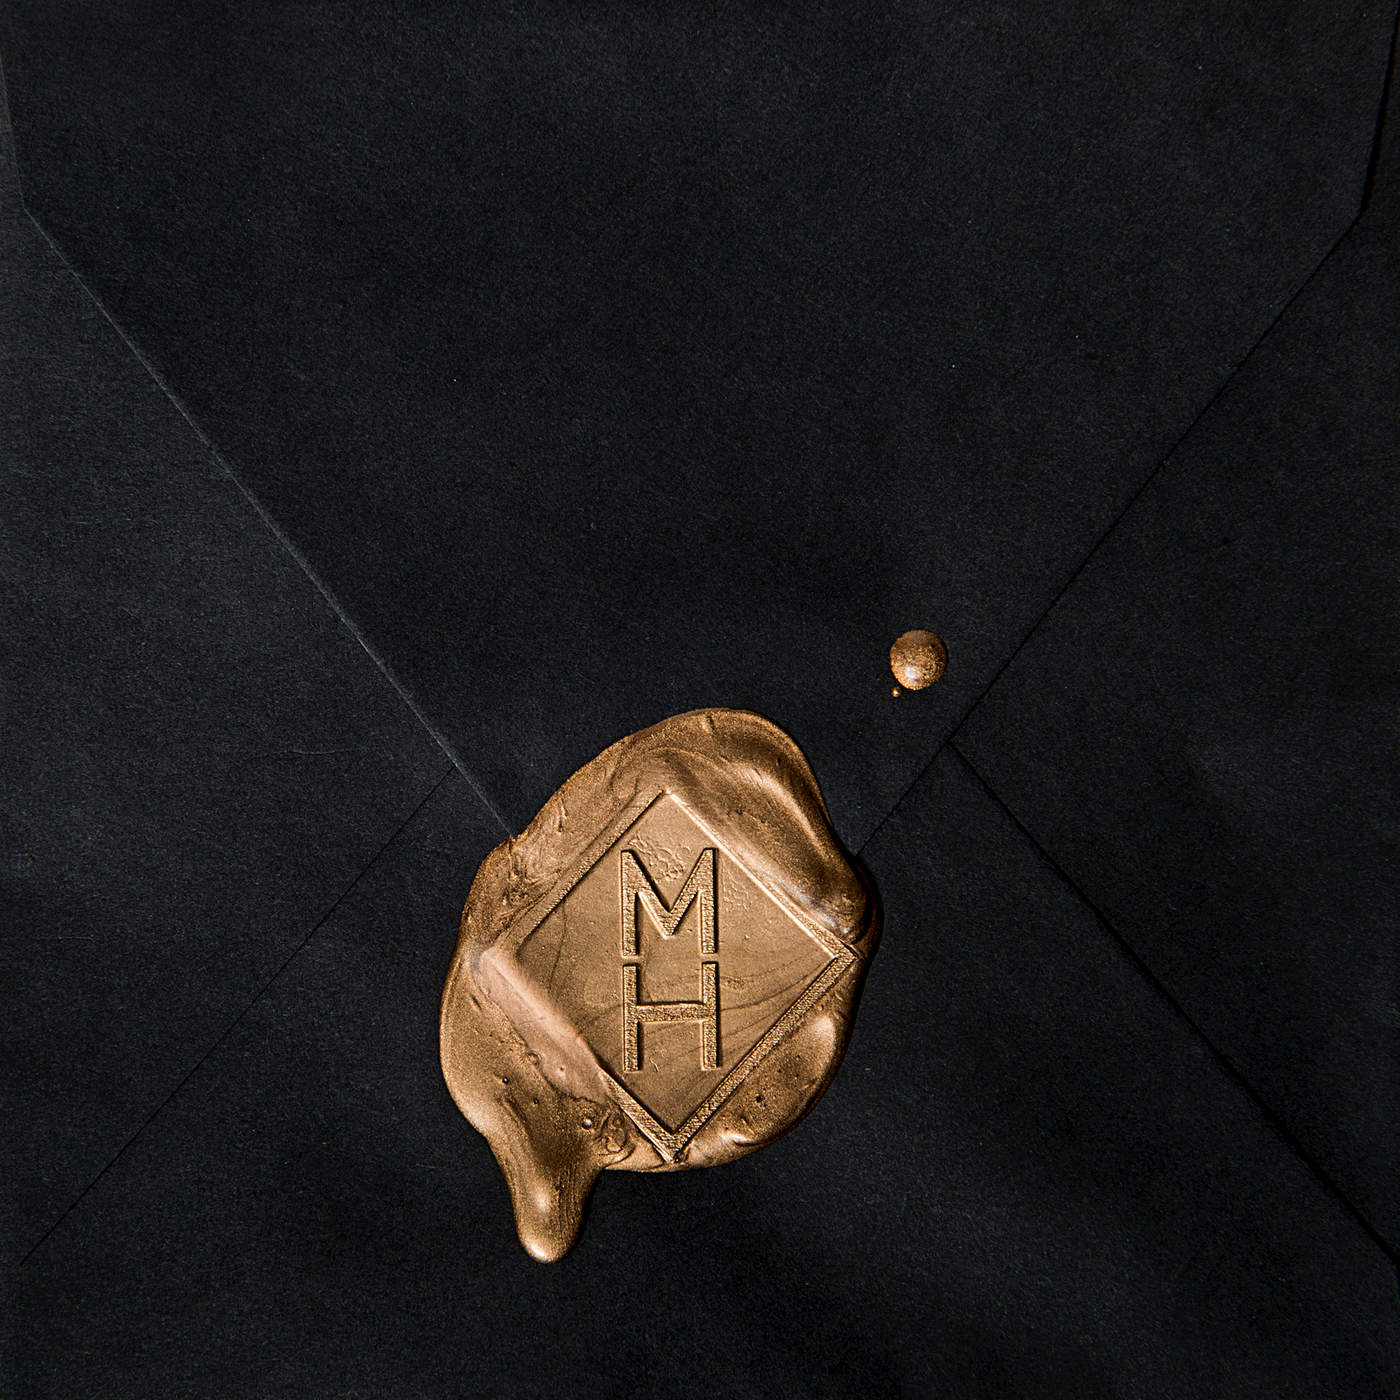 Marian hill down itunes plus acc m4a mp3 single download marian hill down itunes plus acc m4a mp3 single download malvernweather Choice Image